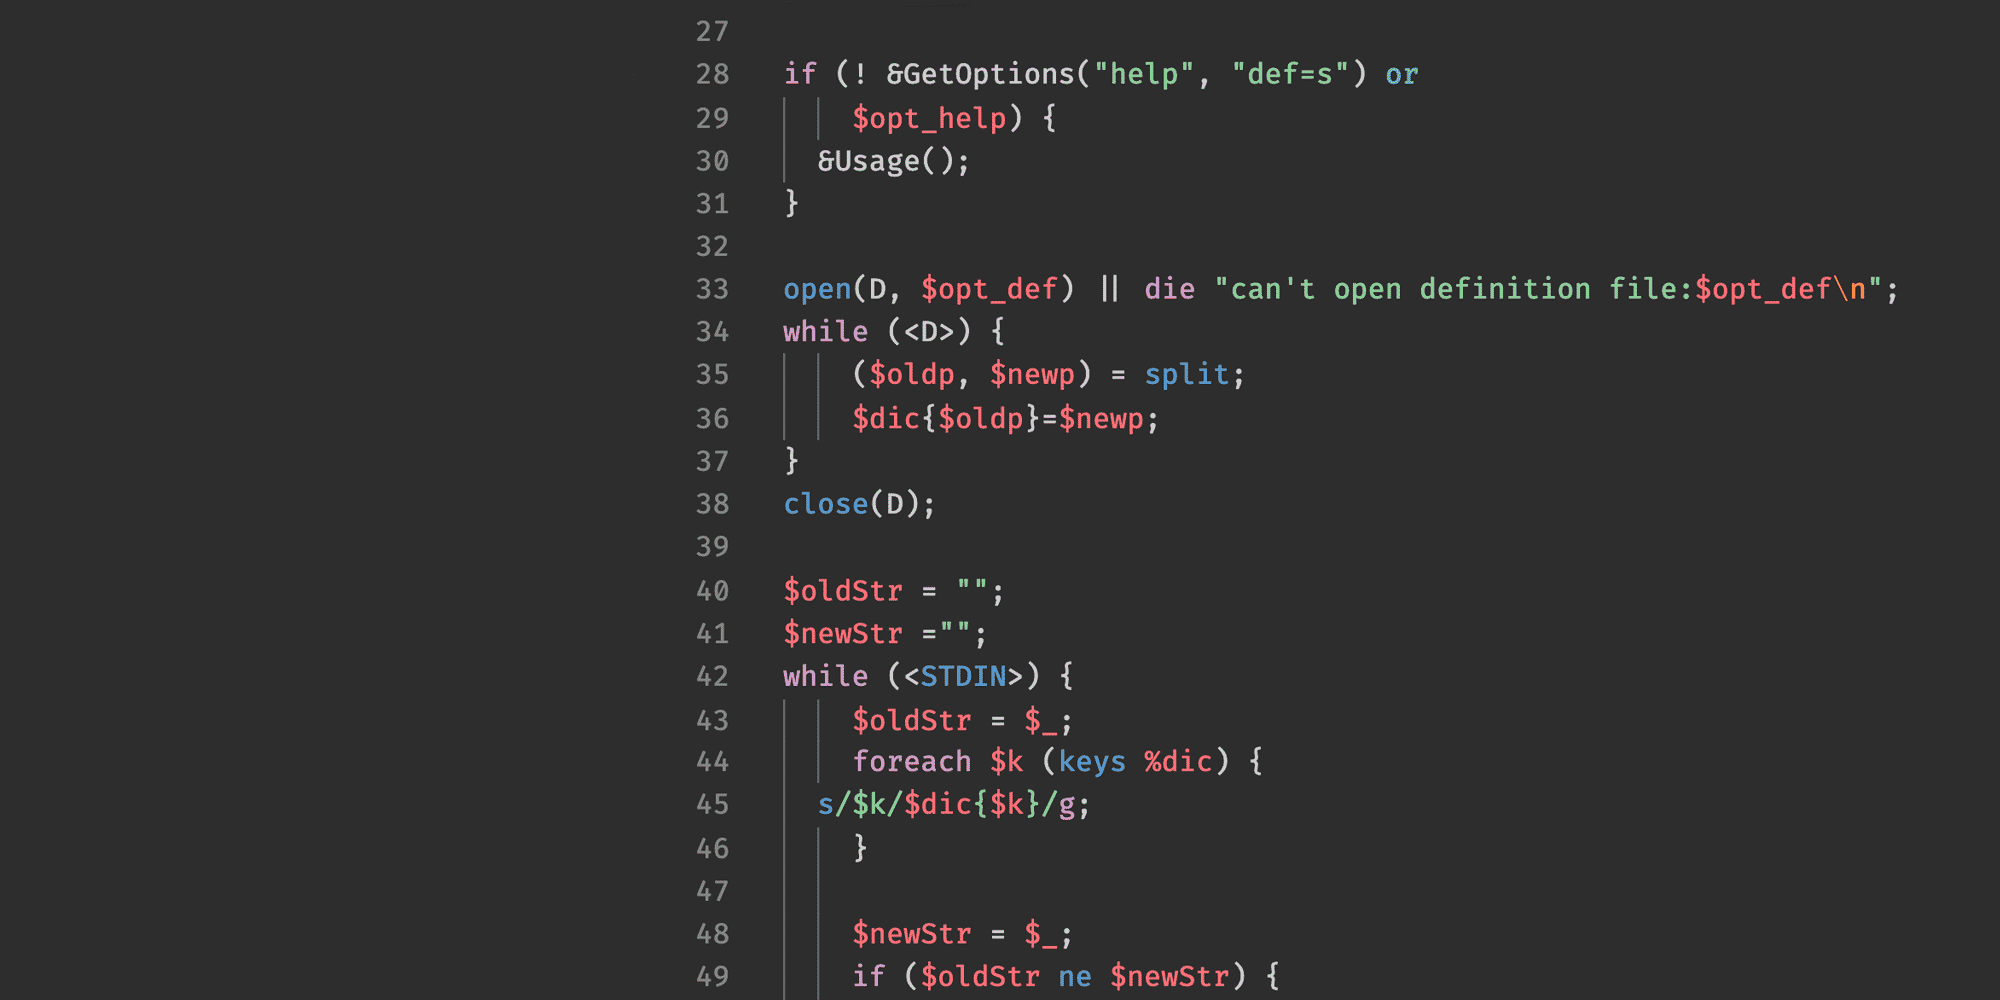 screen shot of some perl code against a dark color theme